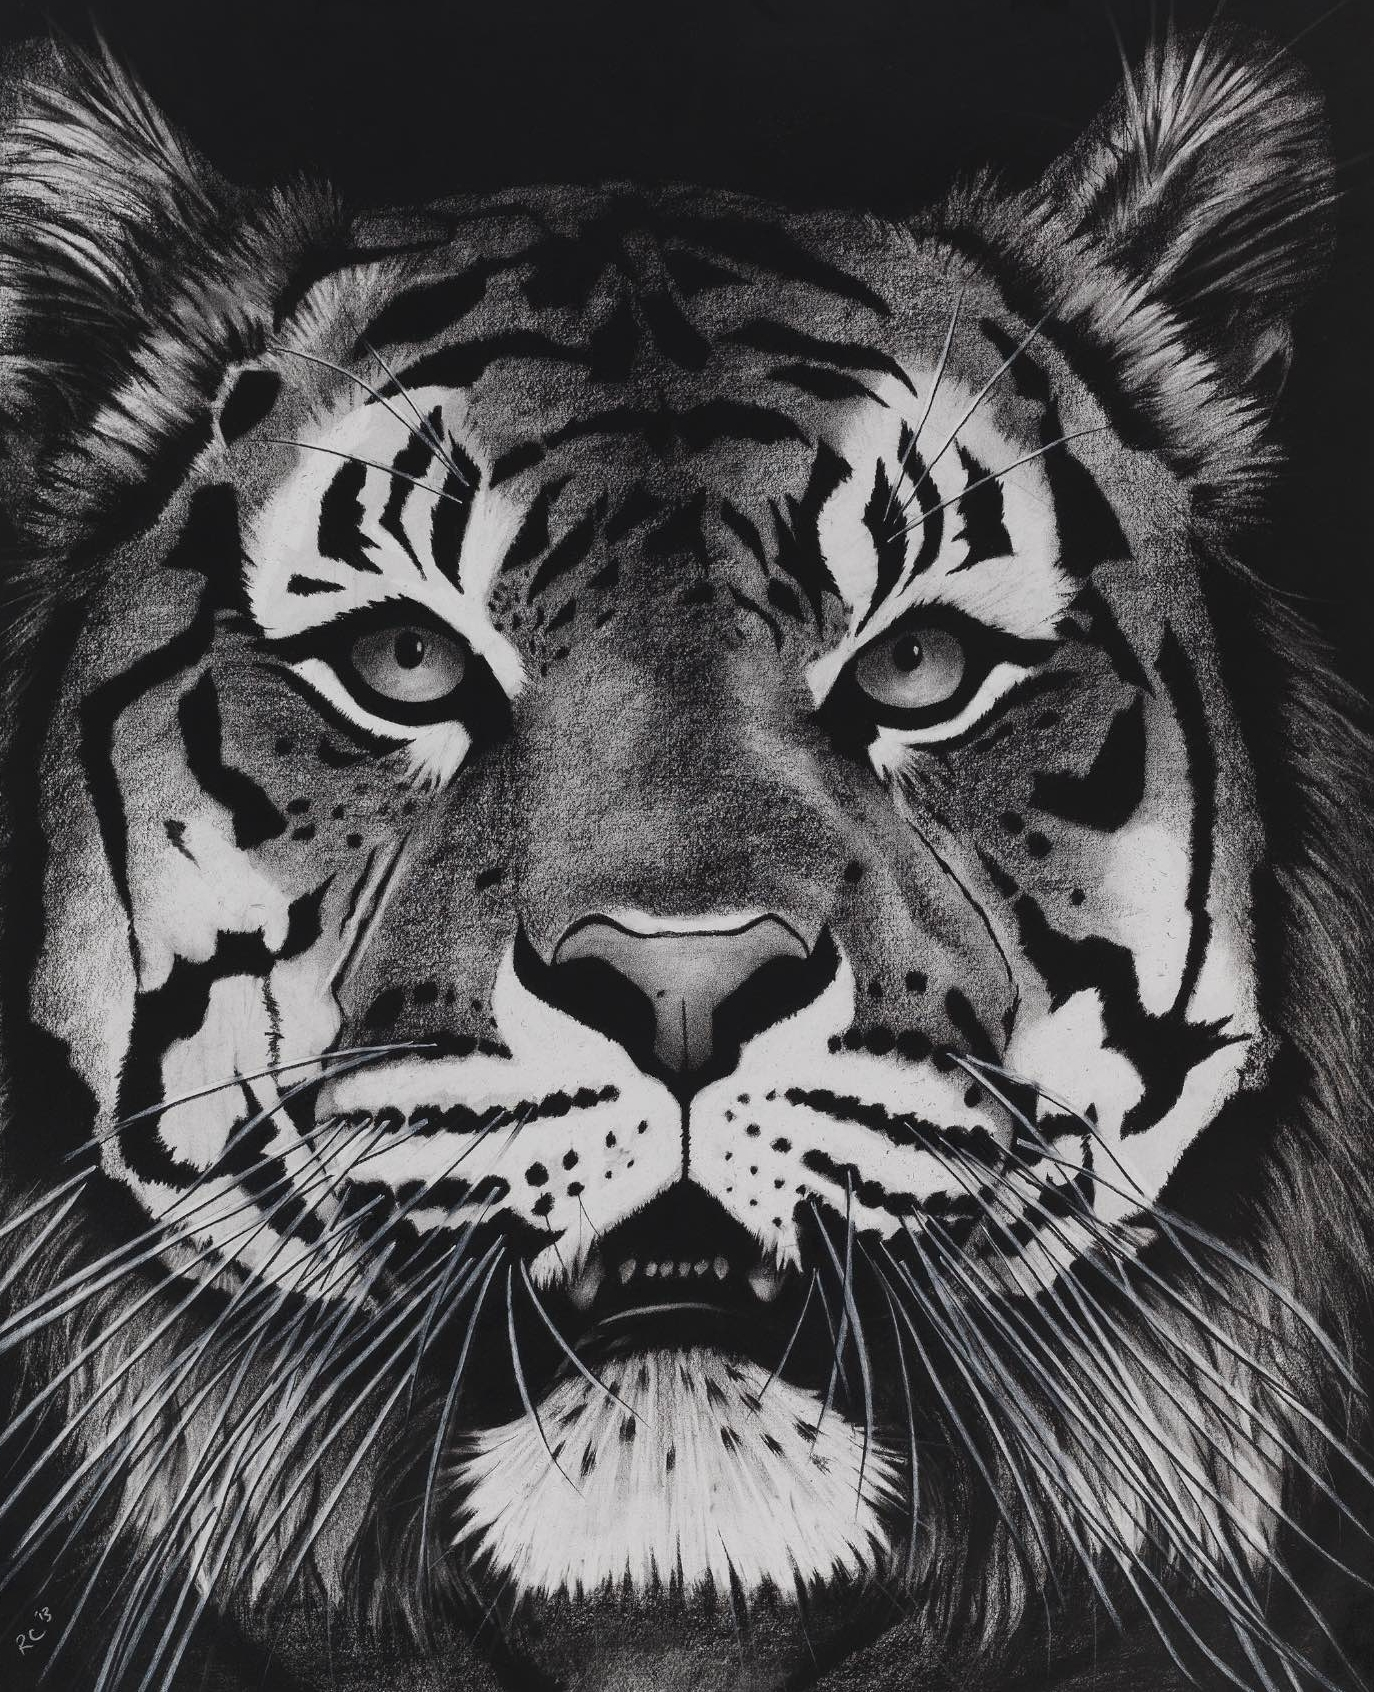 15. TIGER ON BLACK MOUTH OPEN